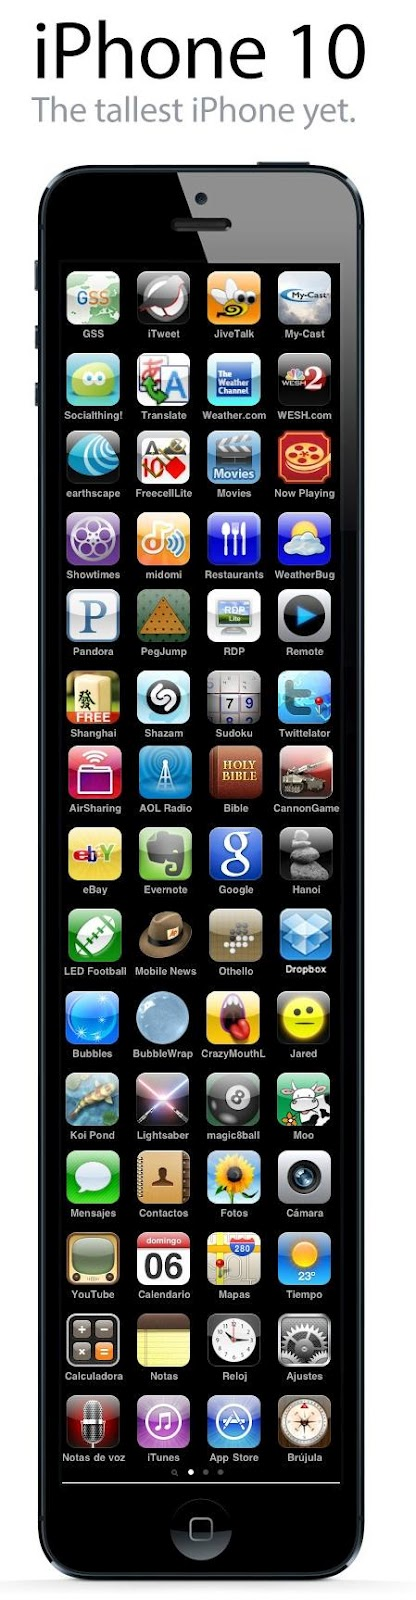 Generation Of Iphone They Call It As 10 The Tallest Yet